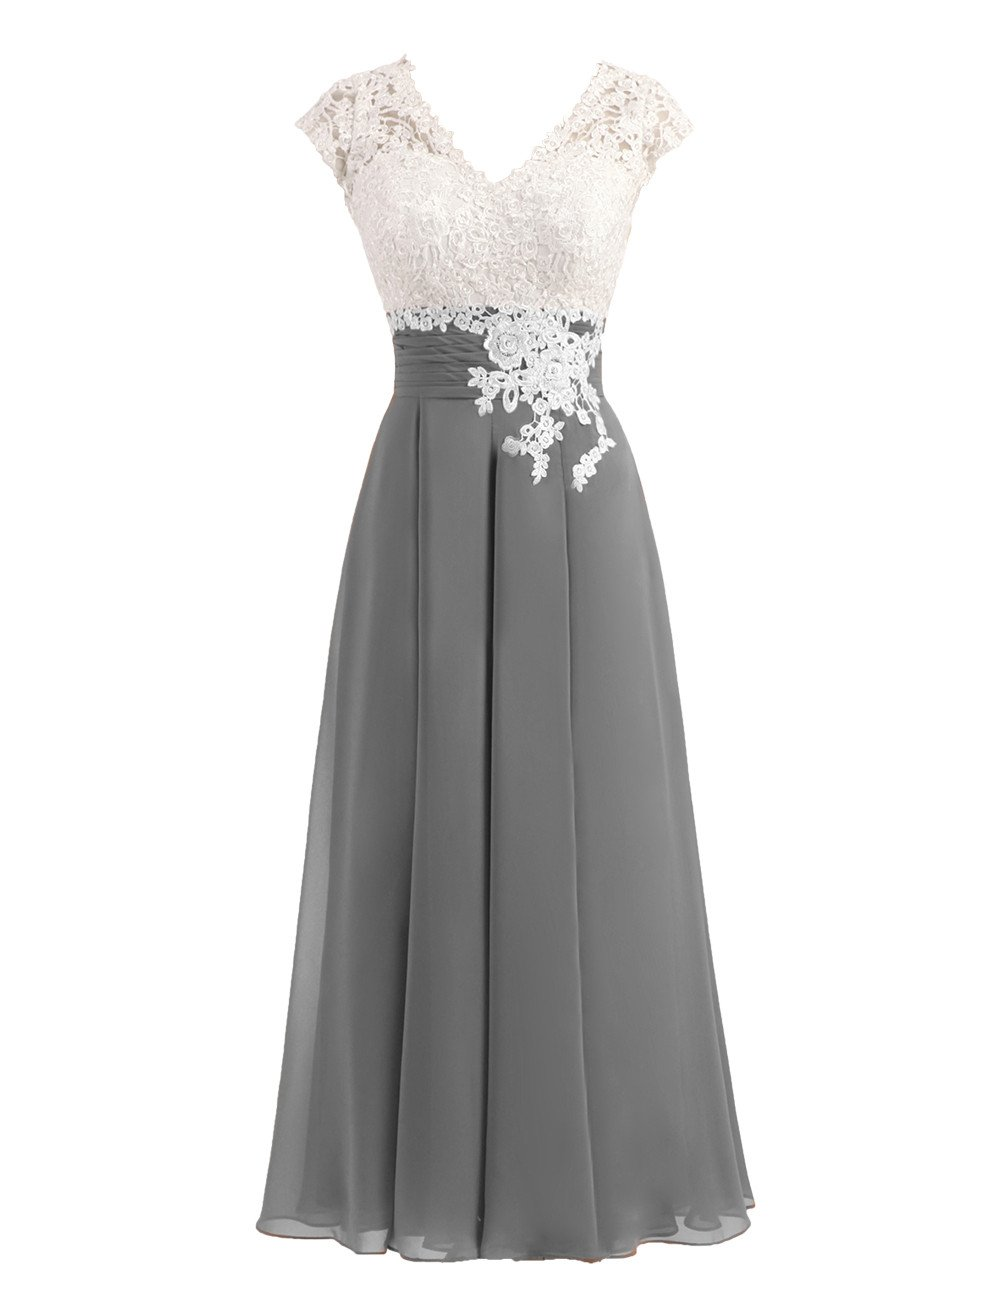 Women's Ivory Lace Top Chiffon Button V-Neck Bridesmaid Dresses with Cap Sleeves Mother of The Bride Dresses (US18W, Dark Grey)